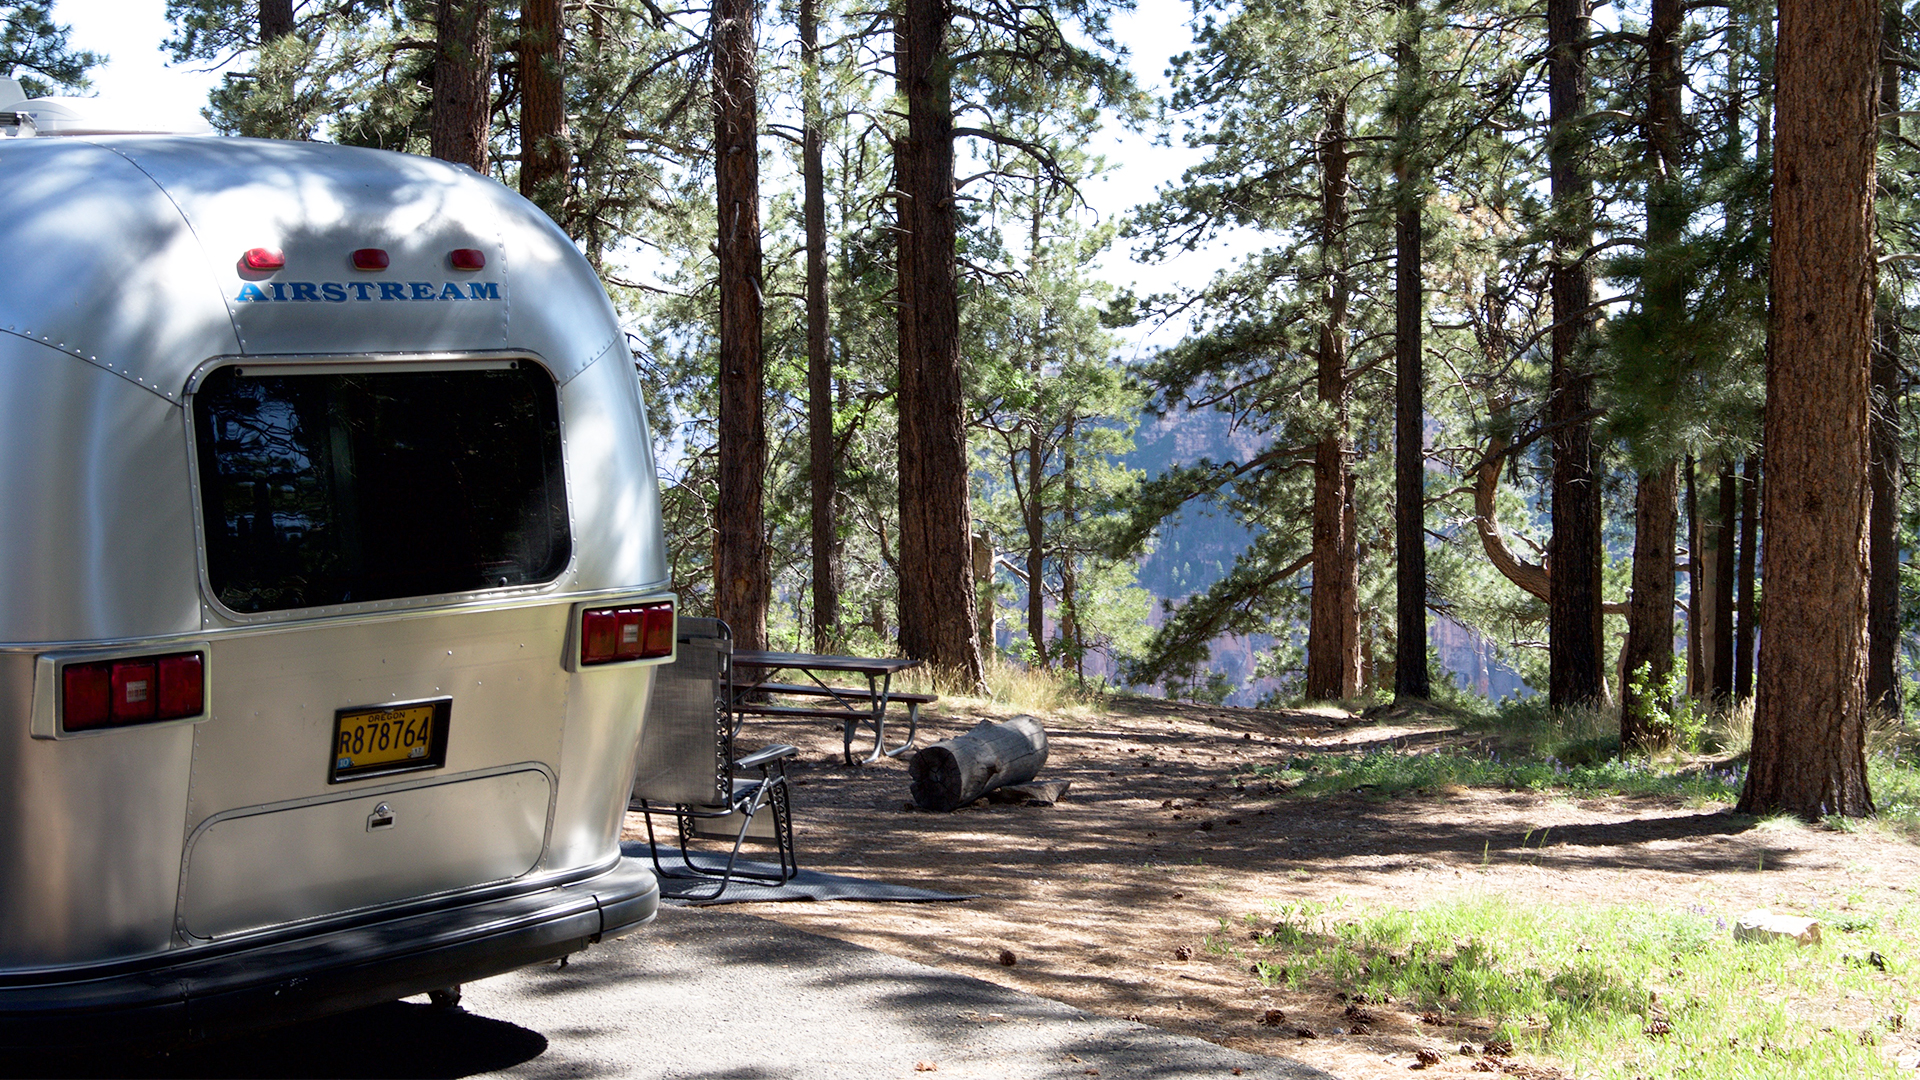 Airstream-Camping-North-Rim-Campground-with-travel-trailer